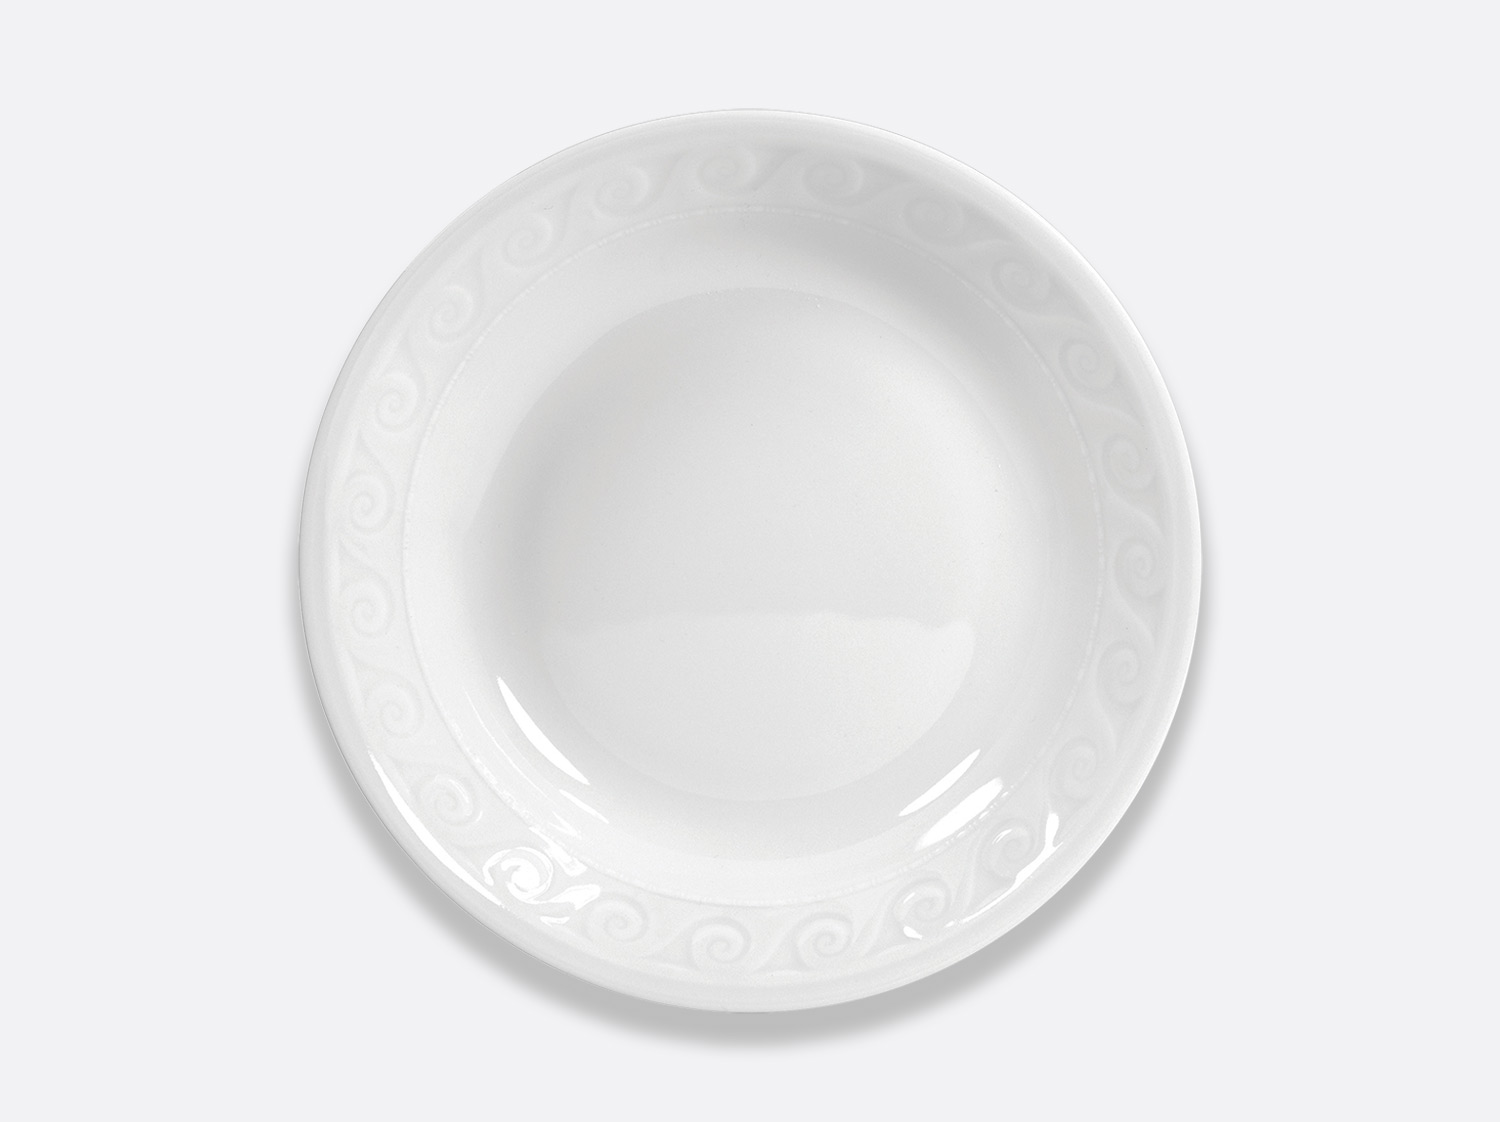 """China Open vegetable bowl 9.6"""" 27 oz of the collection Louvre 